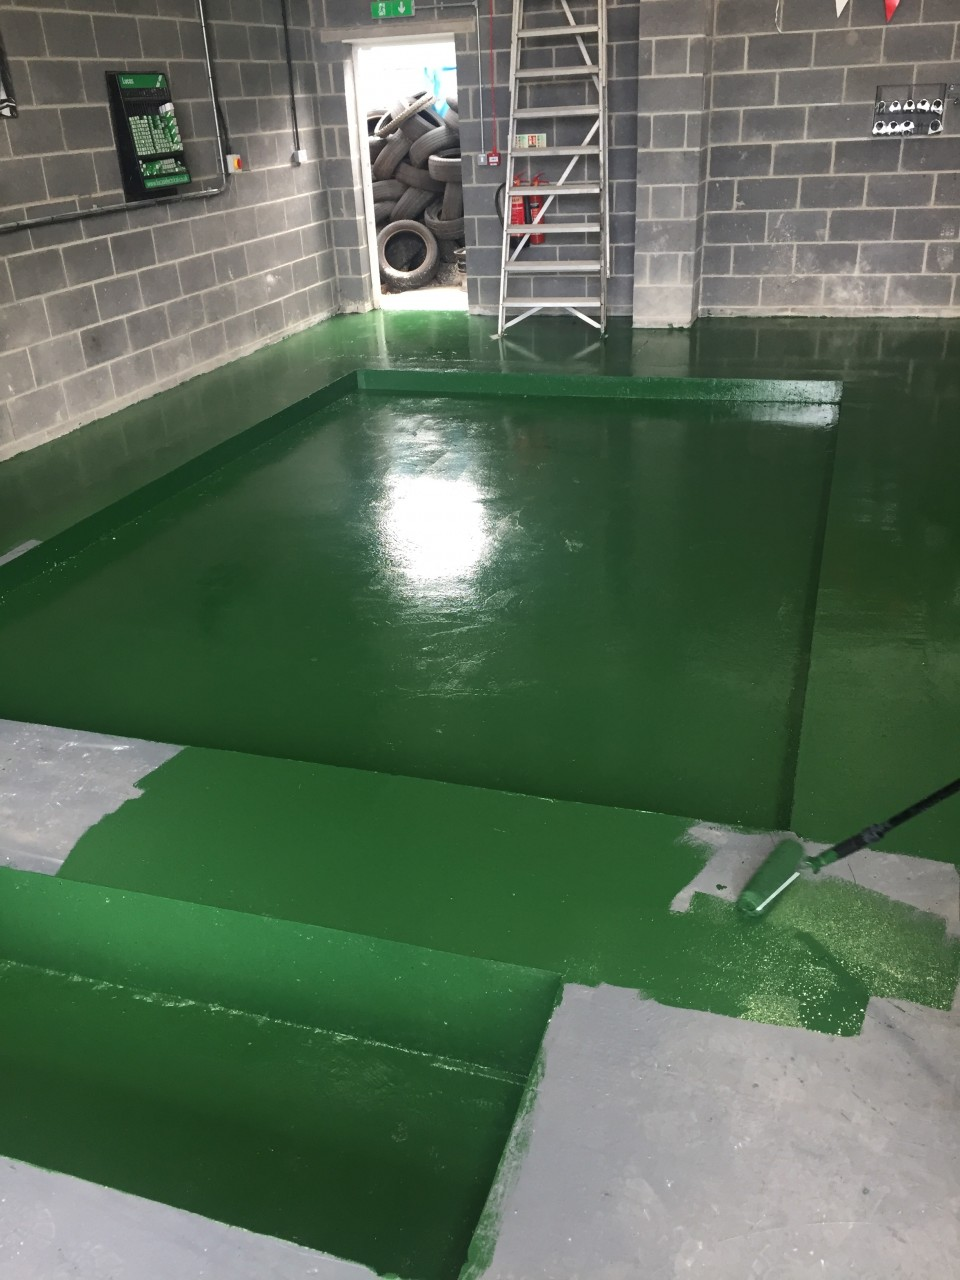 AESTHETICS ARE IMPORTANT TOO - THE FUSION AUTOS GREEN PAINT BEING PAINTED TO THE FLOOR.